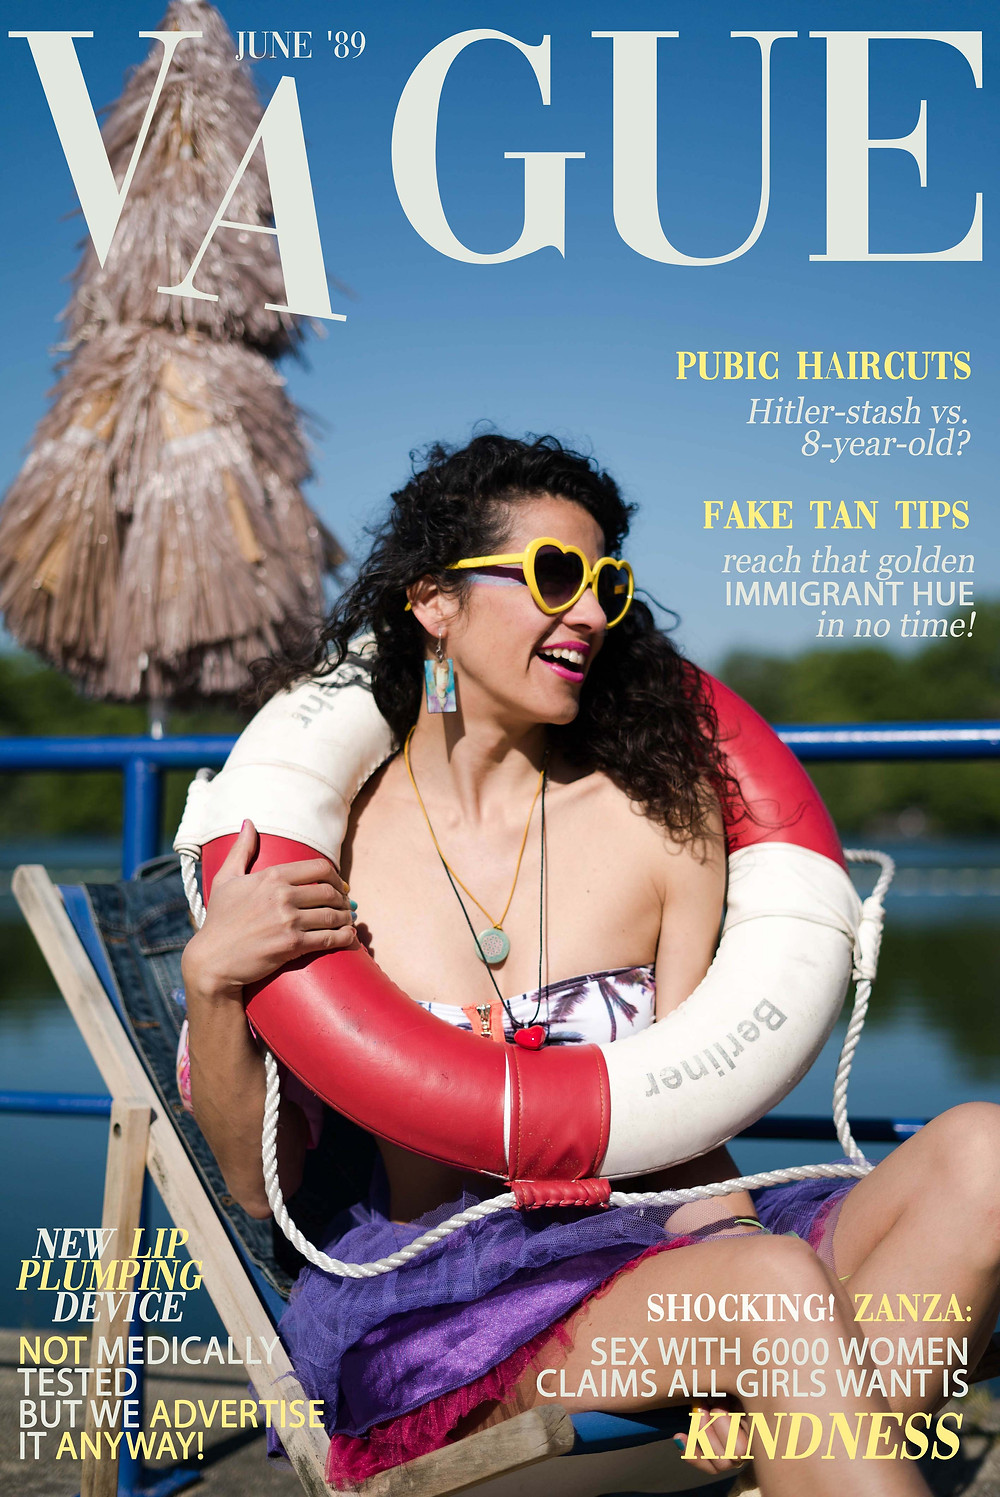 VOGUE Cover - If fashion mags were honest